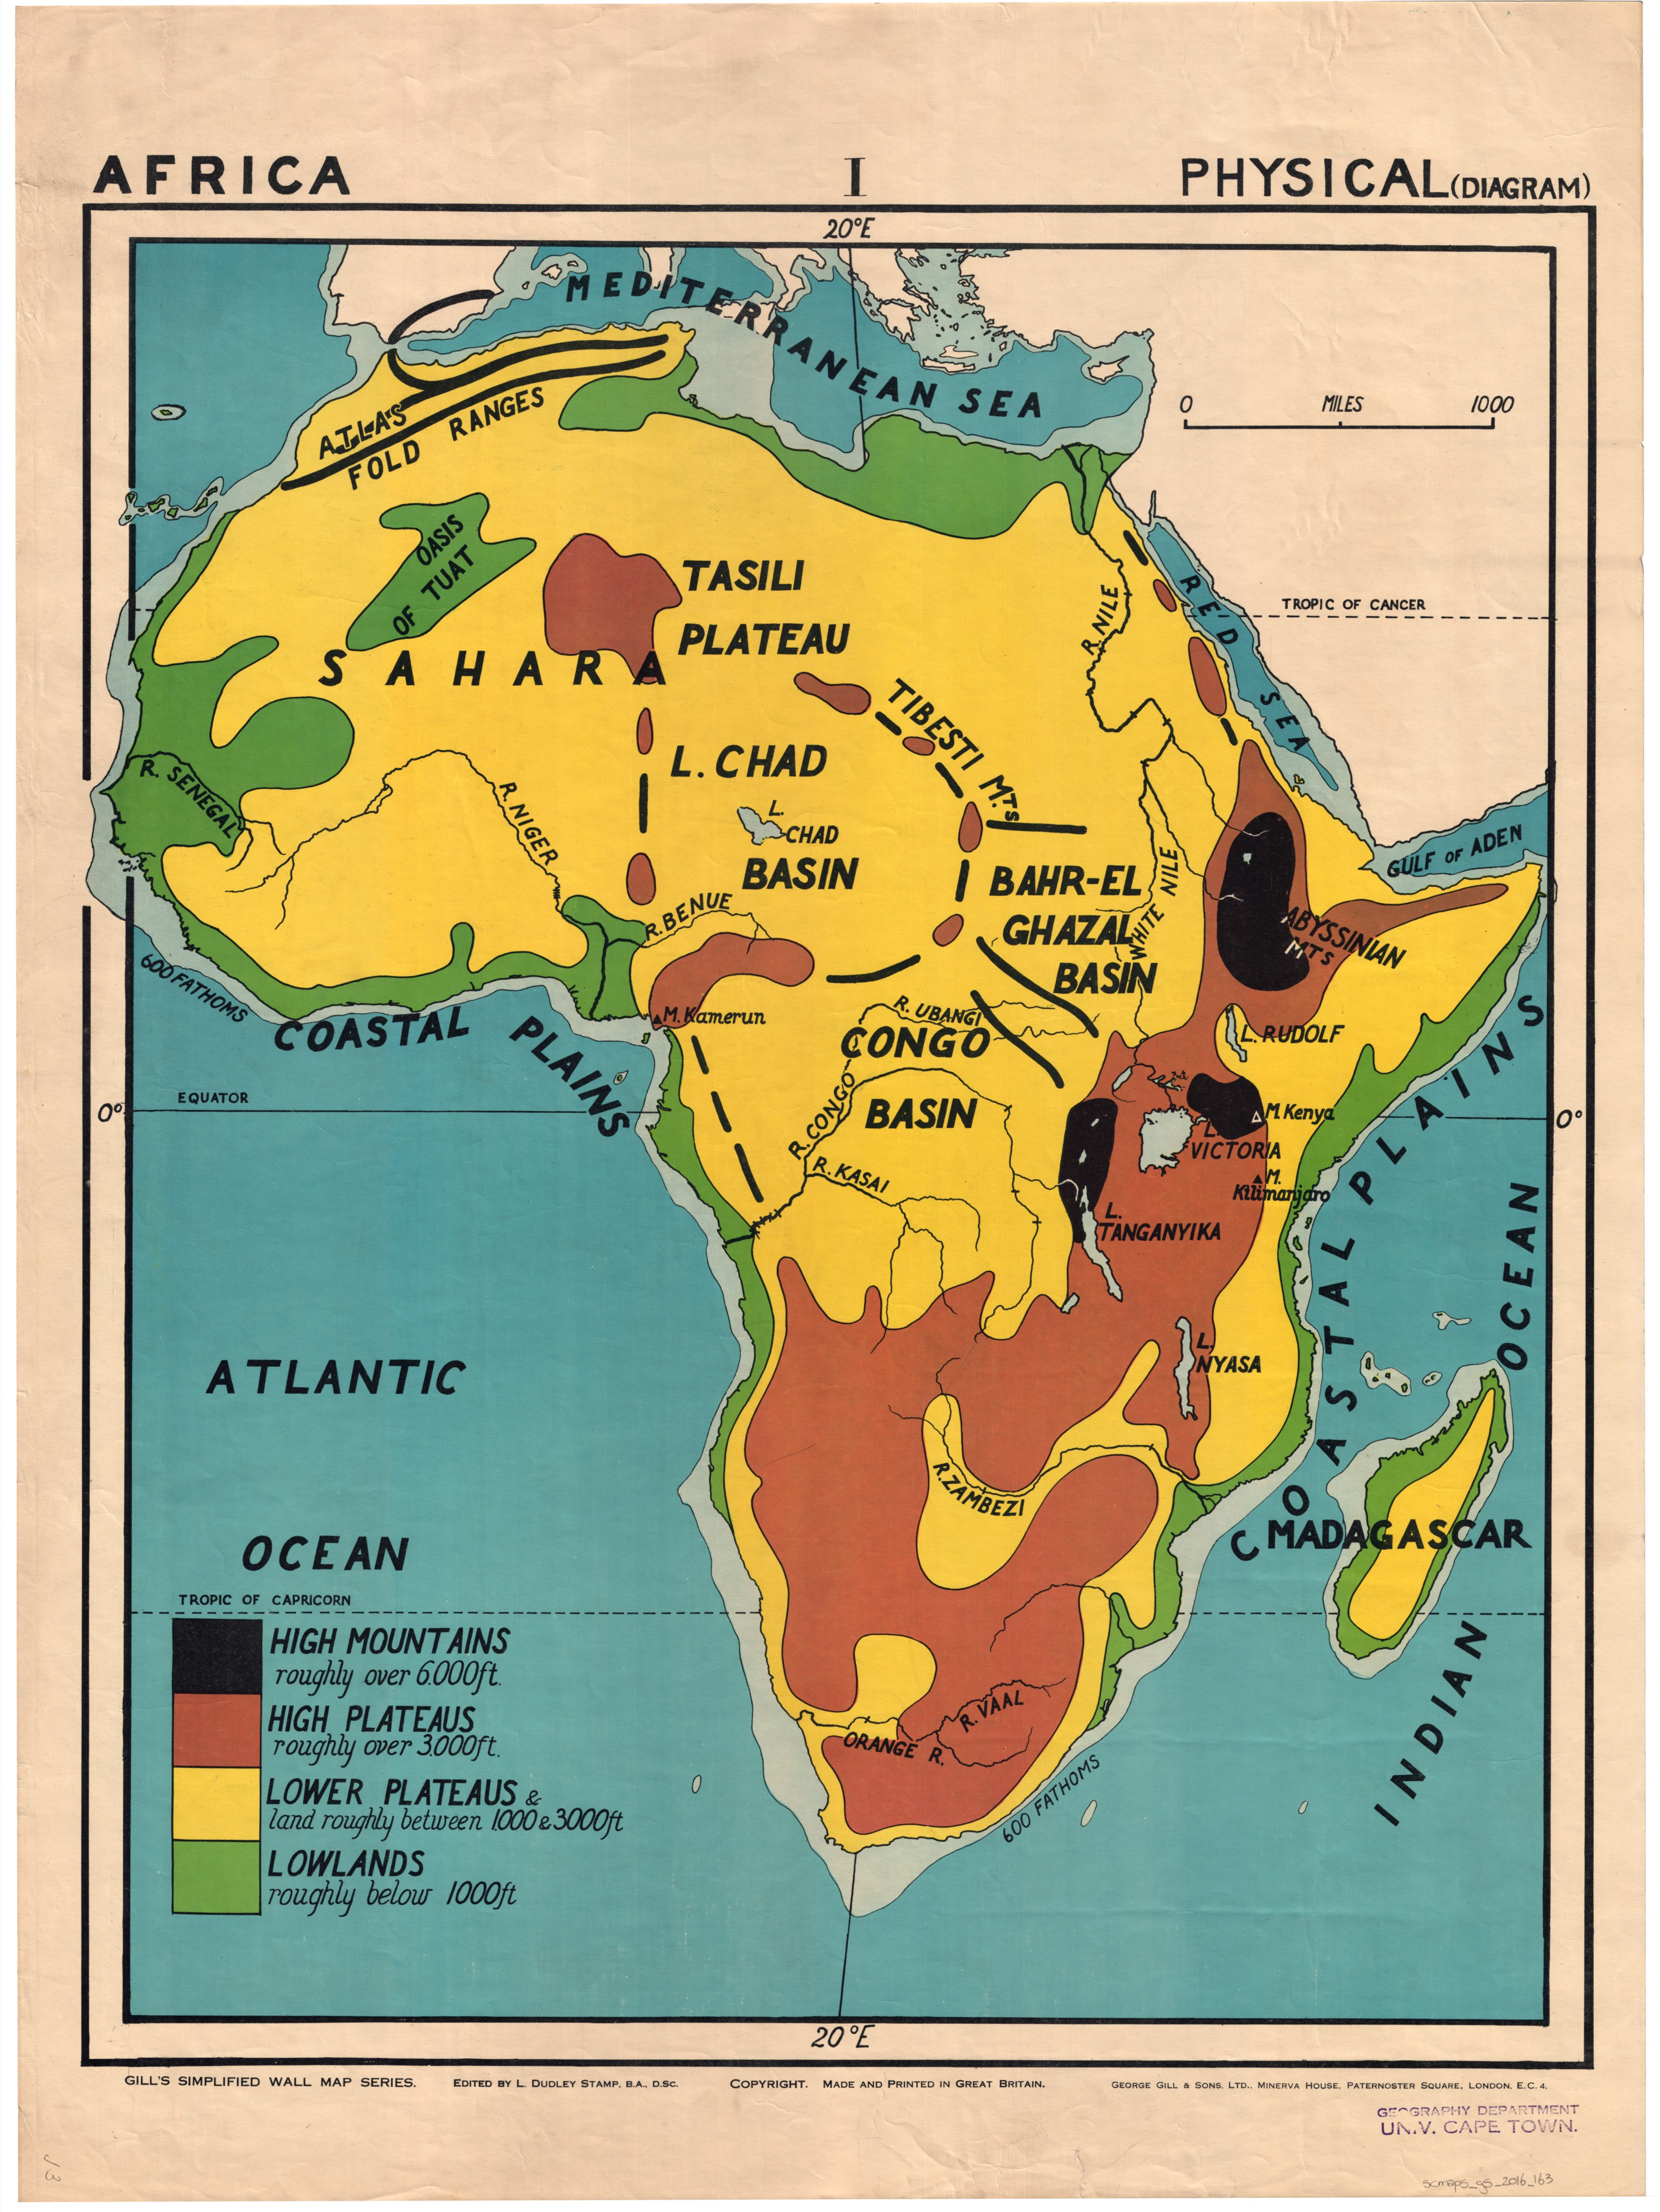 Africa : physical (diagram) | UCT Libraries Digital Collections